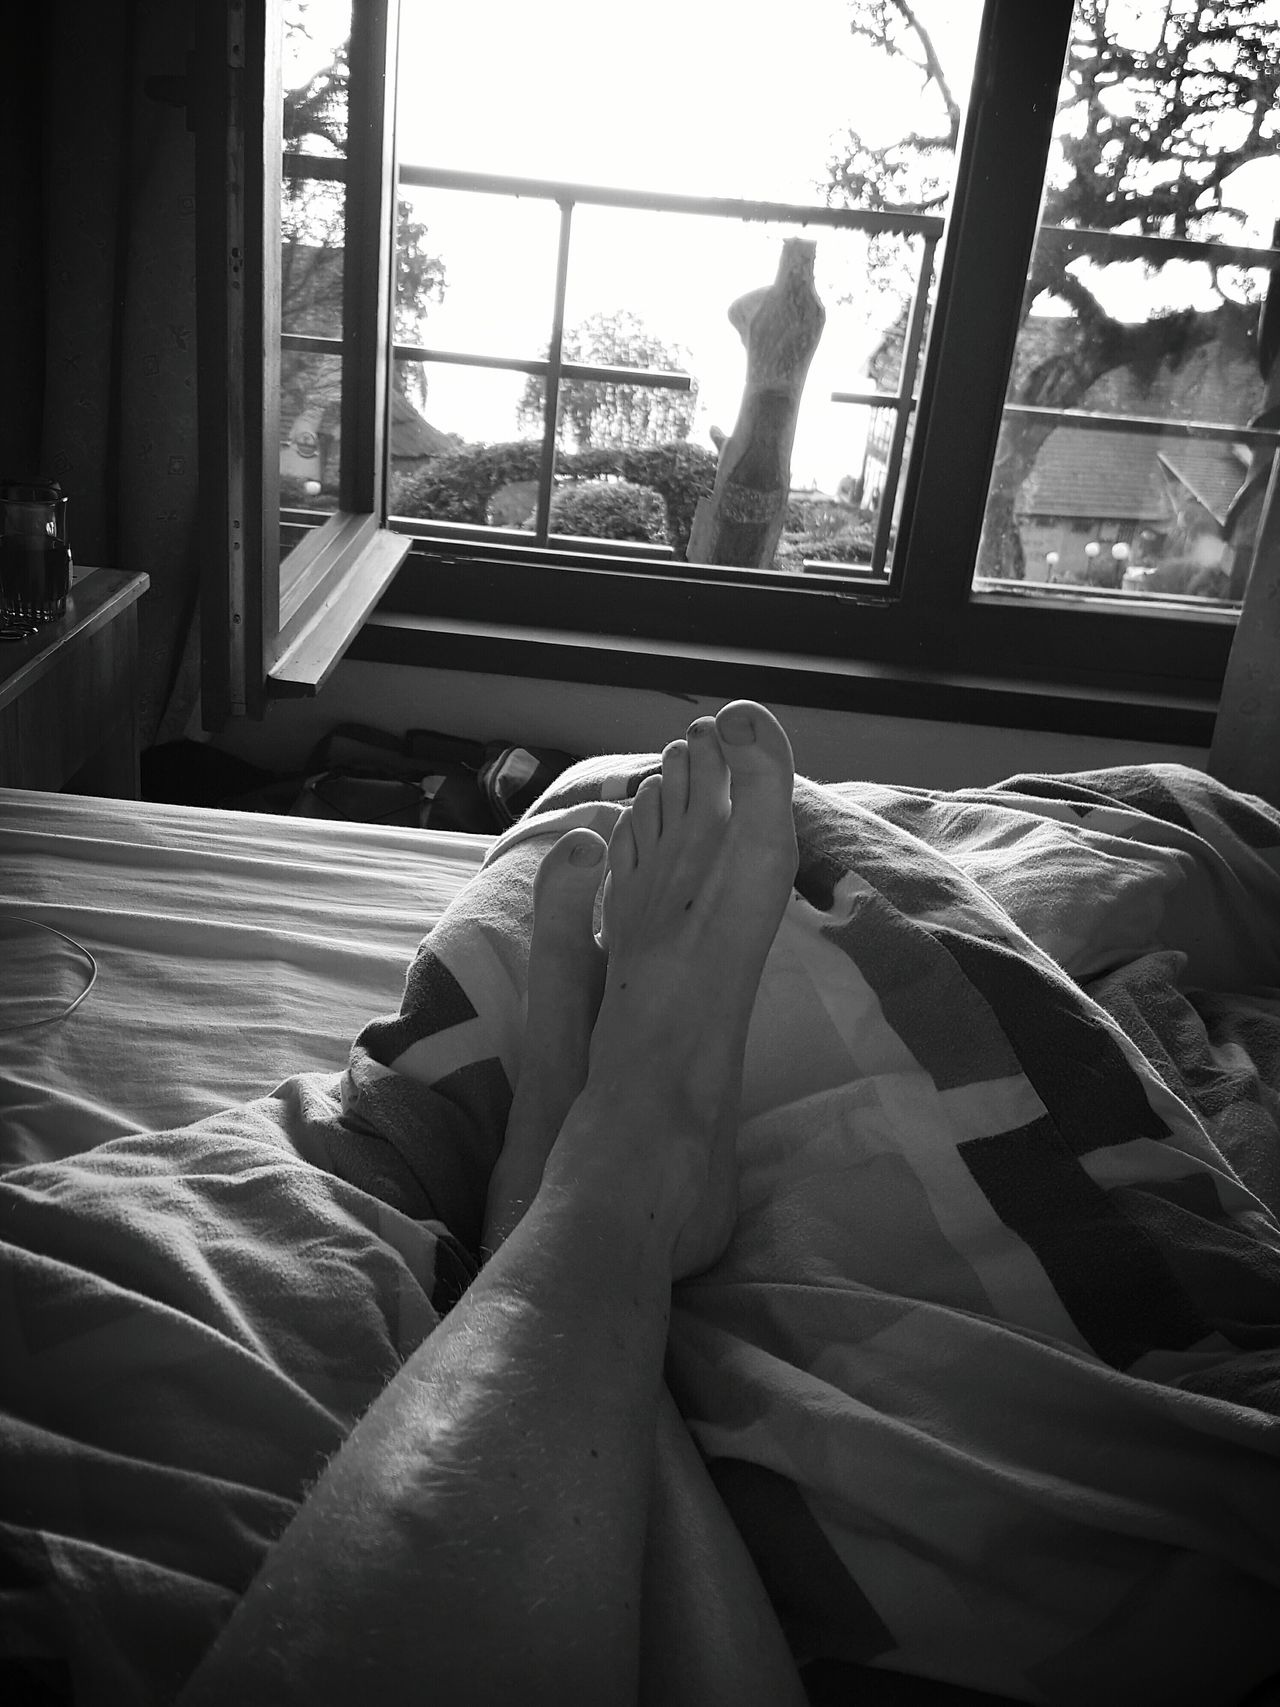 Human Foot Barefoot Relaxation Human Body Part Human Leg One Person Women One Woman Only Leisure Activity Personal Perspective Lying On My Bed Morning View Black And White Black And White Photography